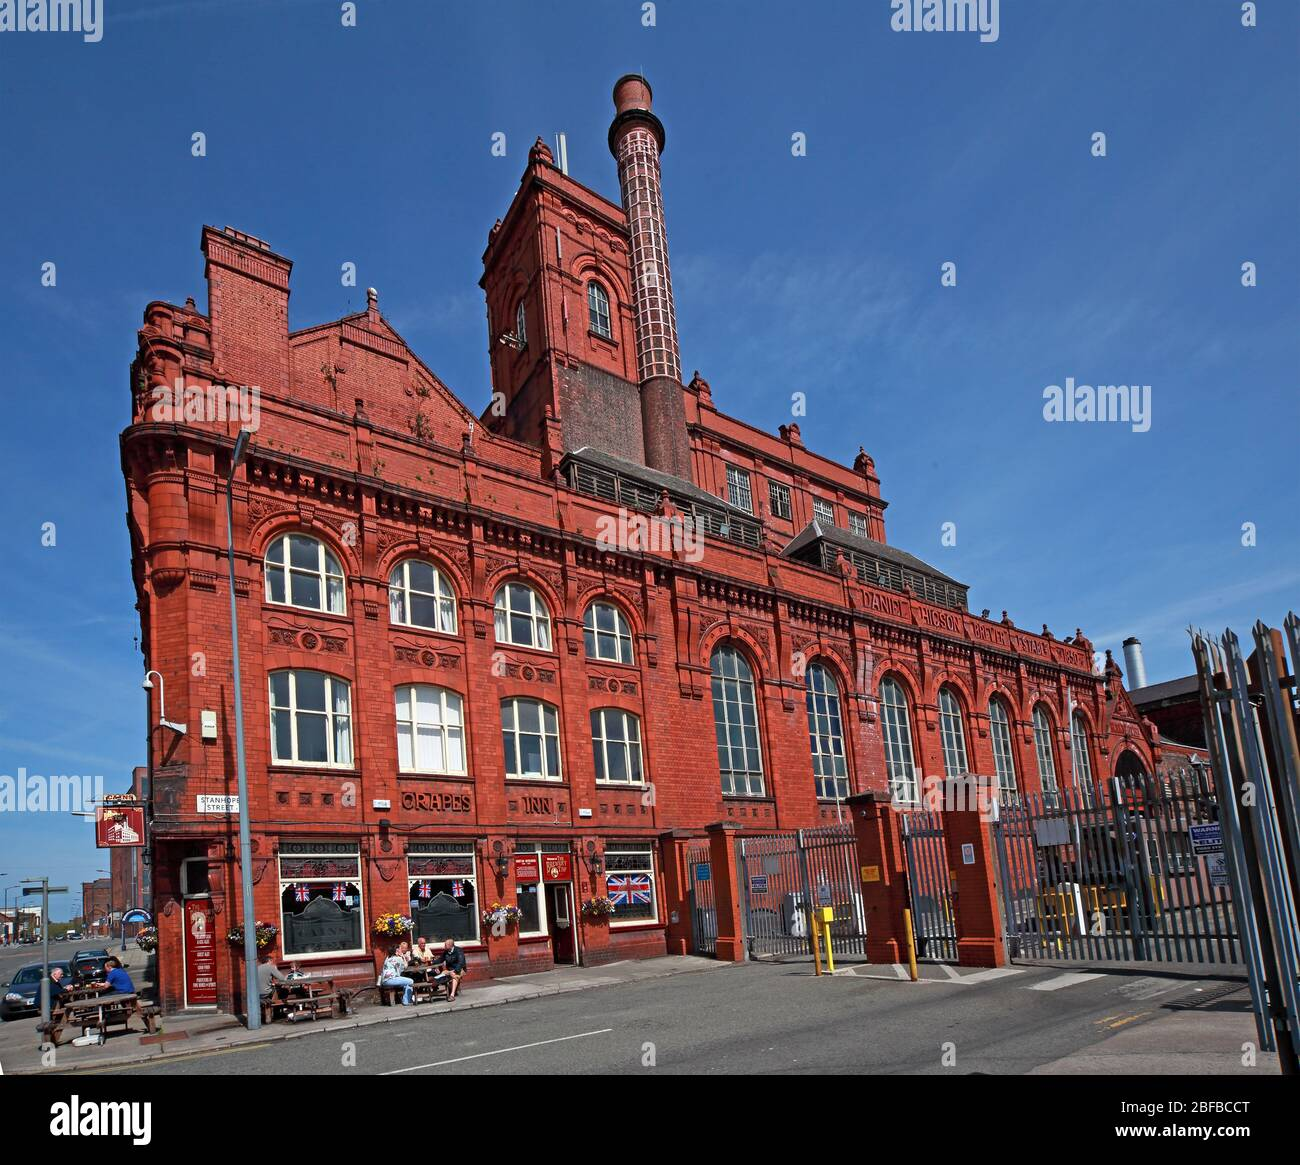 Cains Brewery Tap, Classic British Pub, 39 Stanhope St, Liverpool, Merseyside,England, UK, L8 5RE Stock Photo